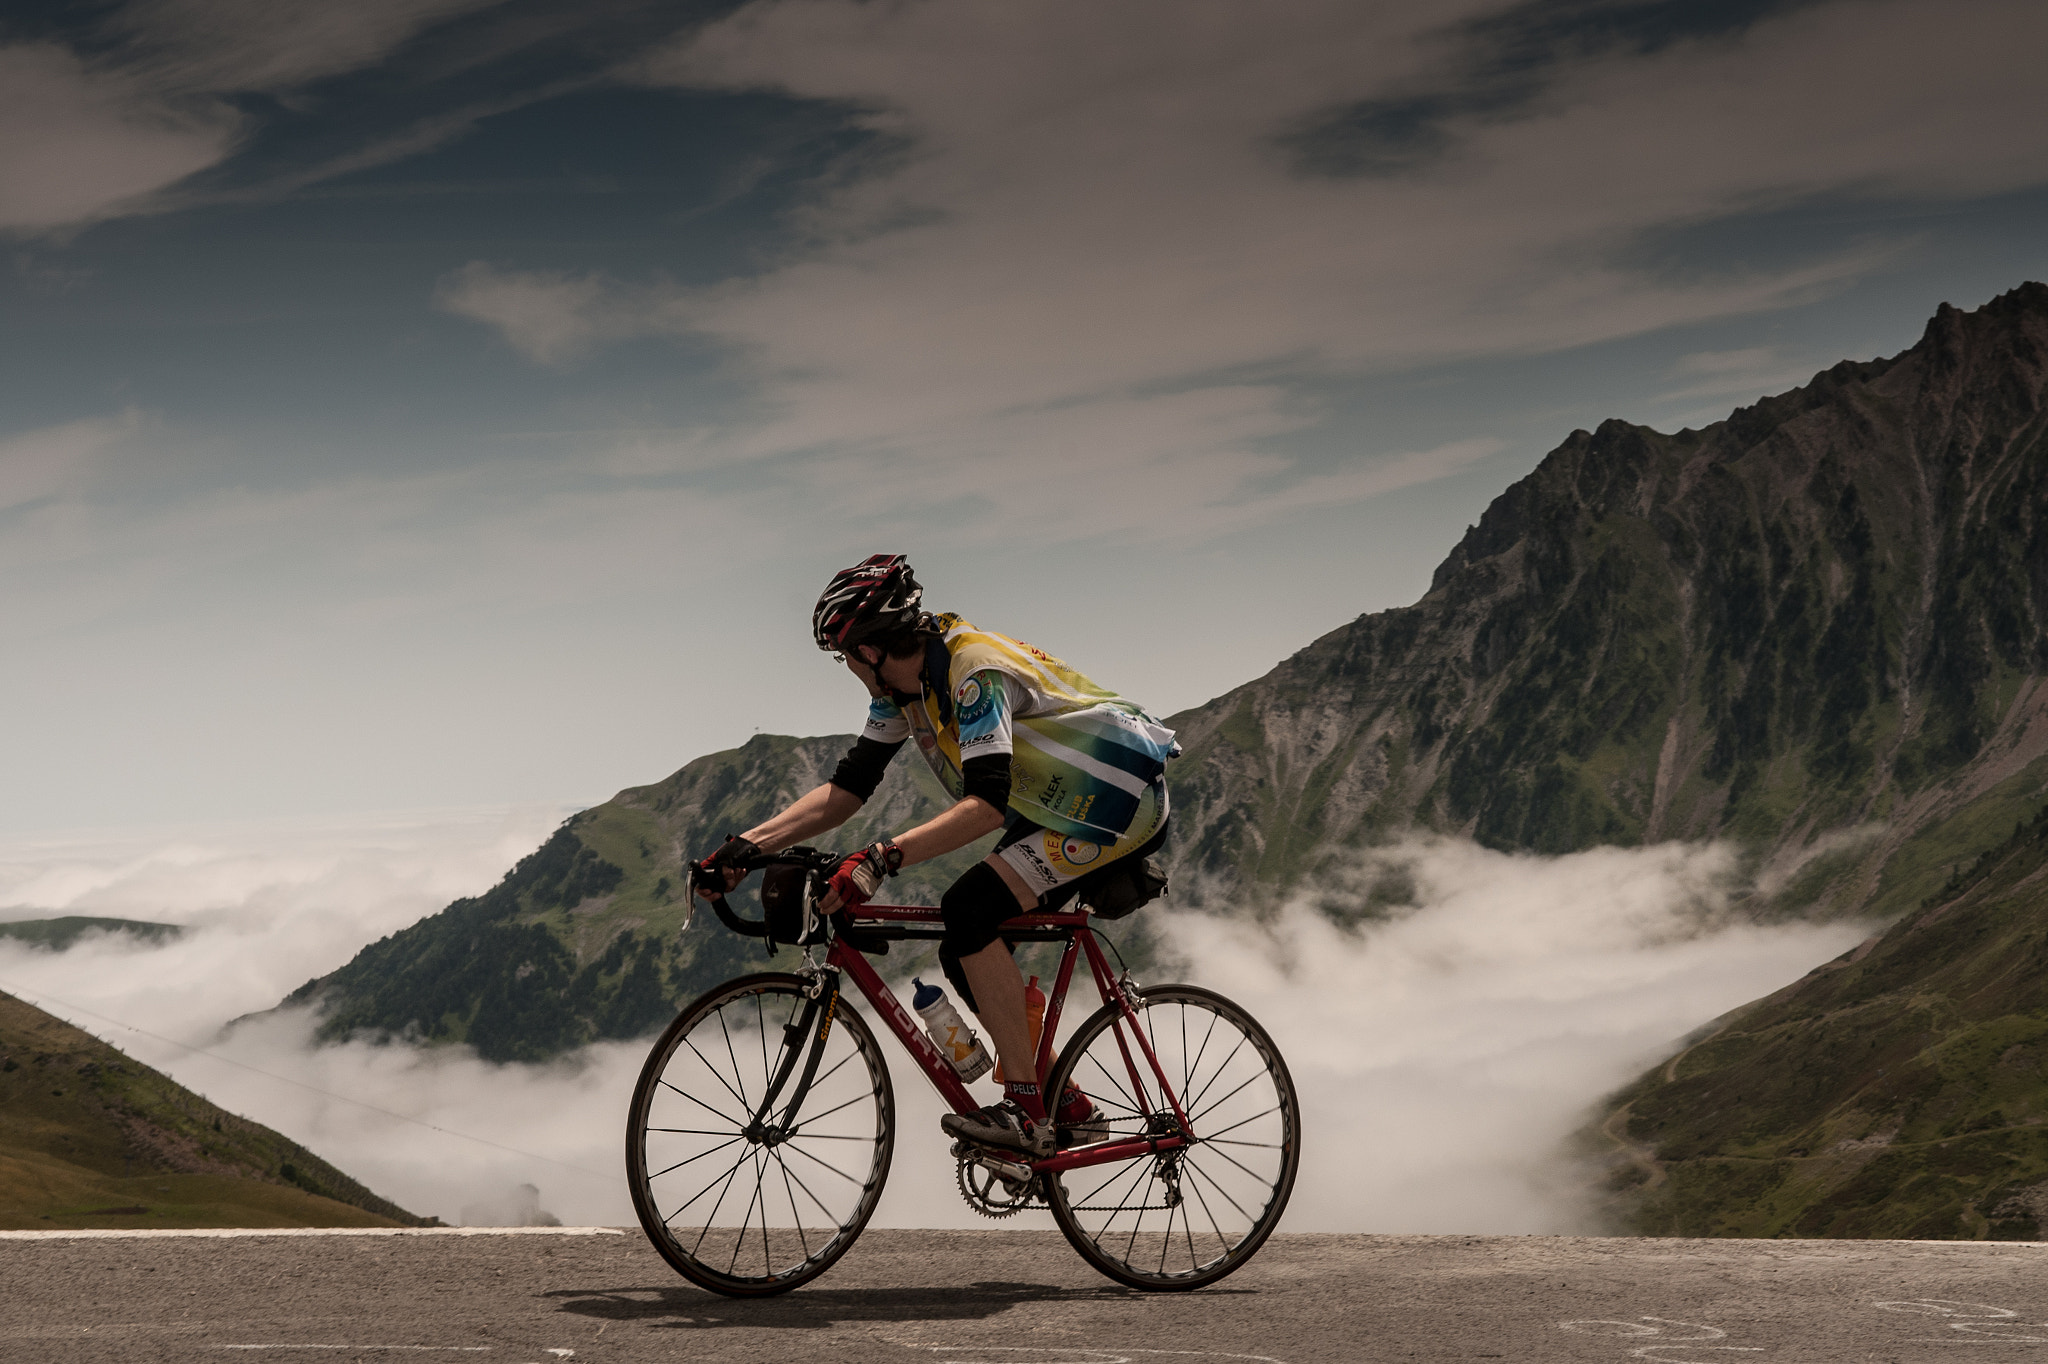 Photograph Ride in the clouds by Ronen Rosenblatt on 500px